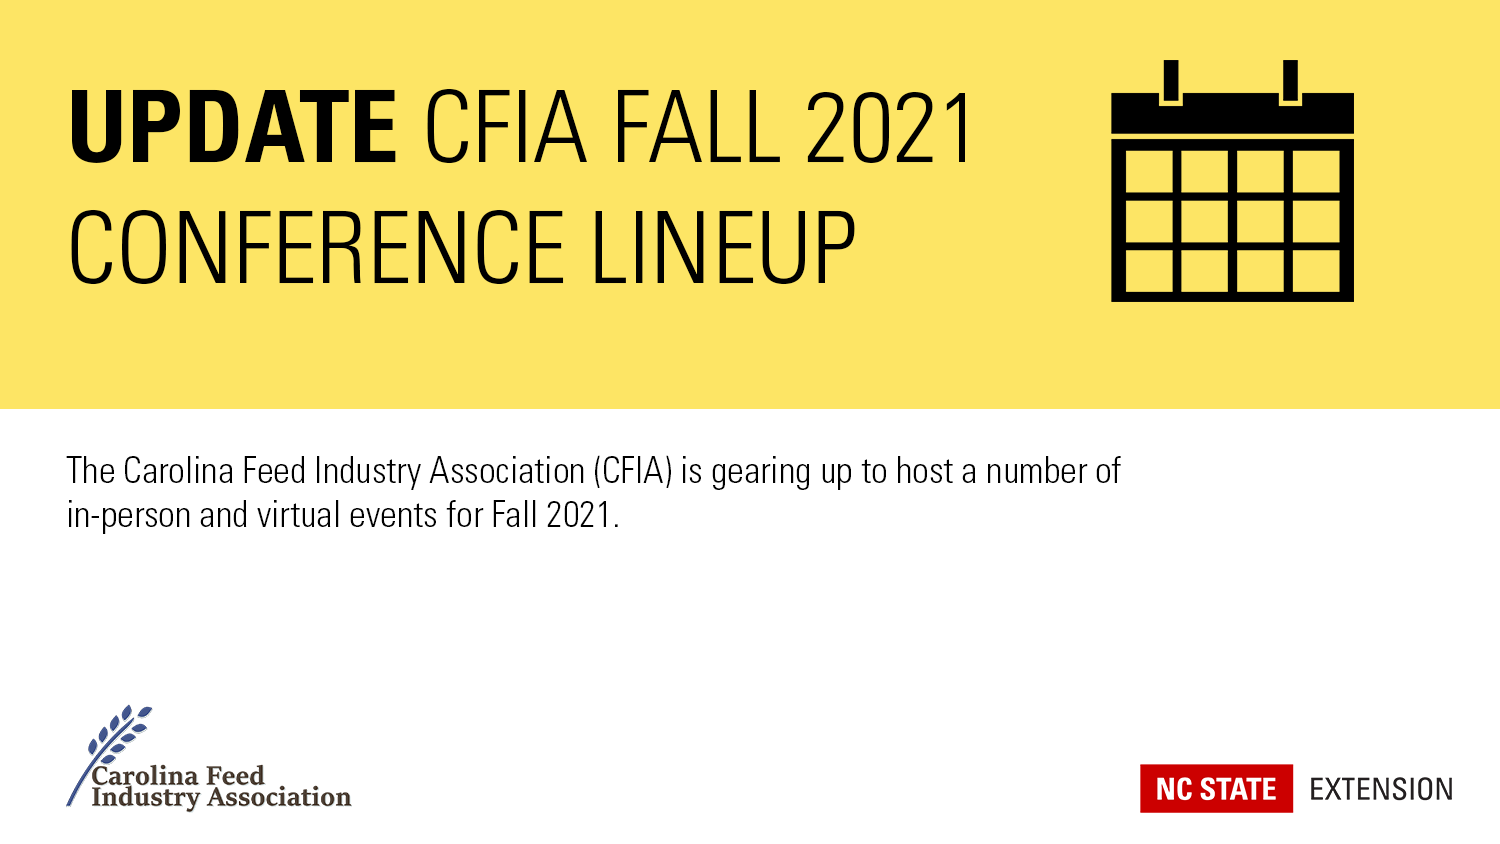 CFIA Fall 2021 Conference lineup banner